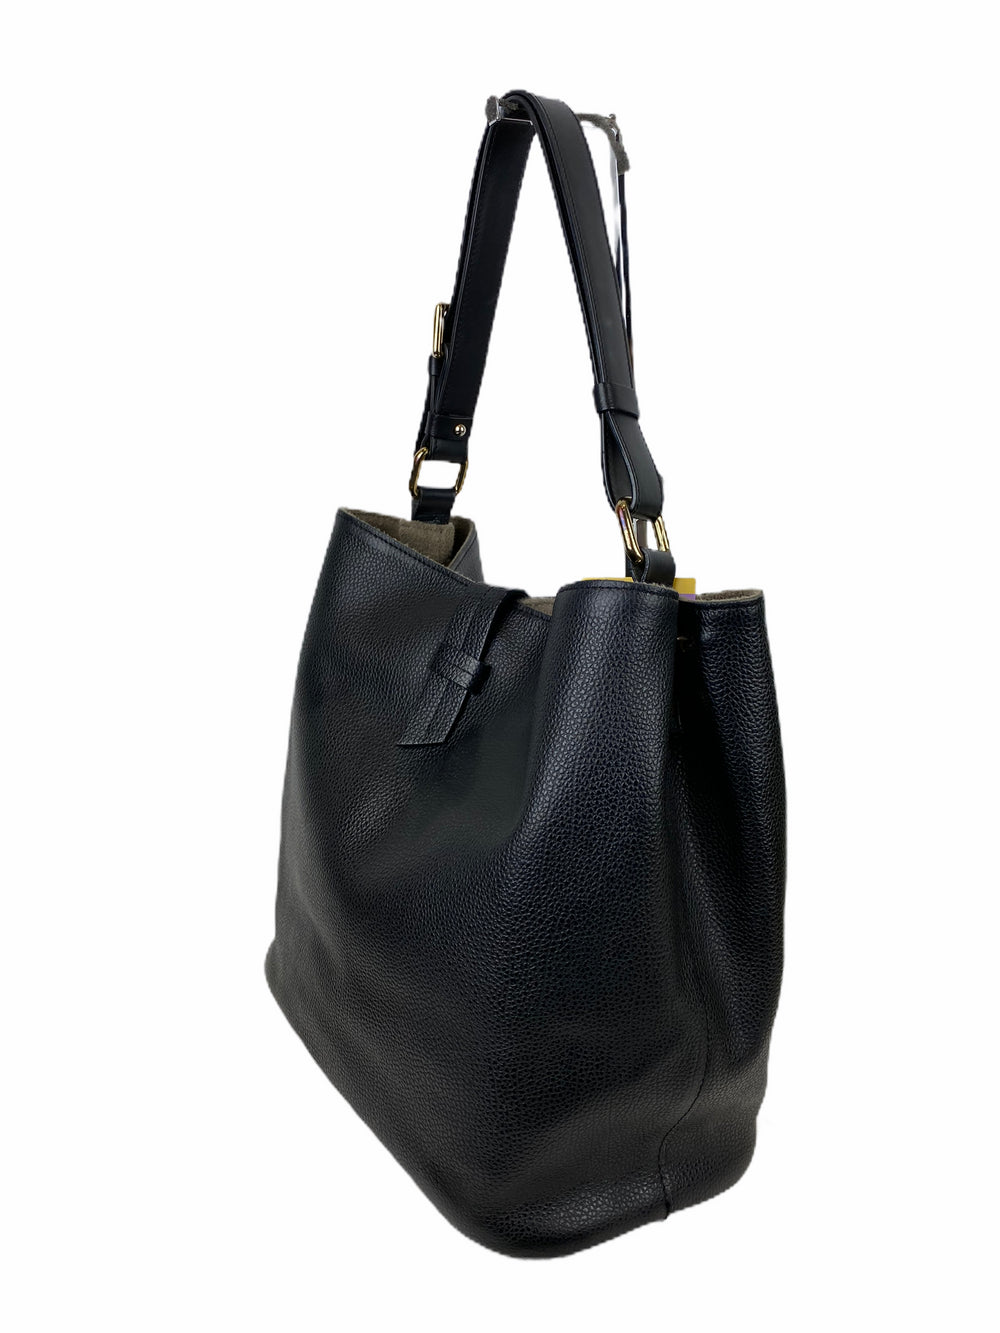 Russell & Bromley Black Leather Hobo - As Seen on Instagram 30/08/2020